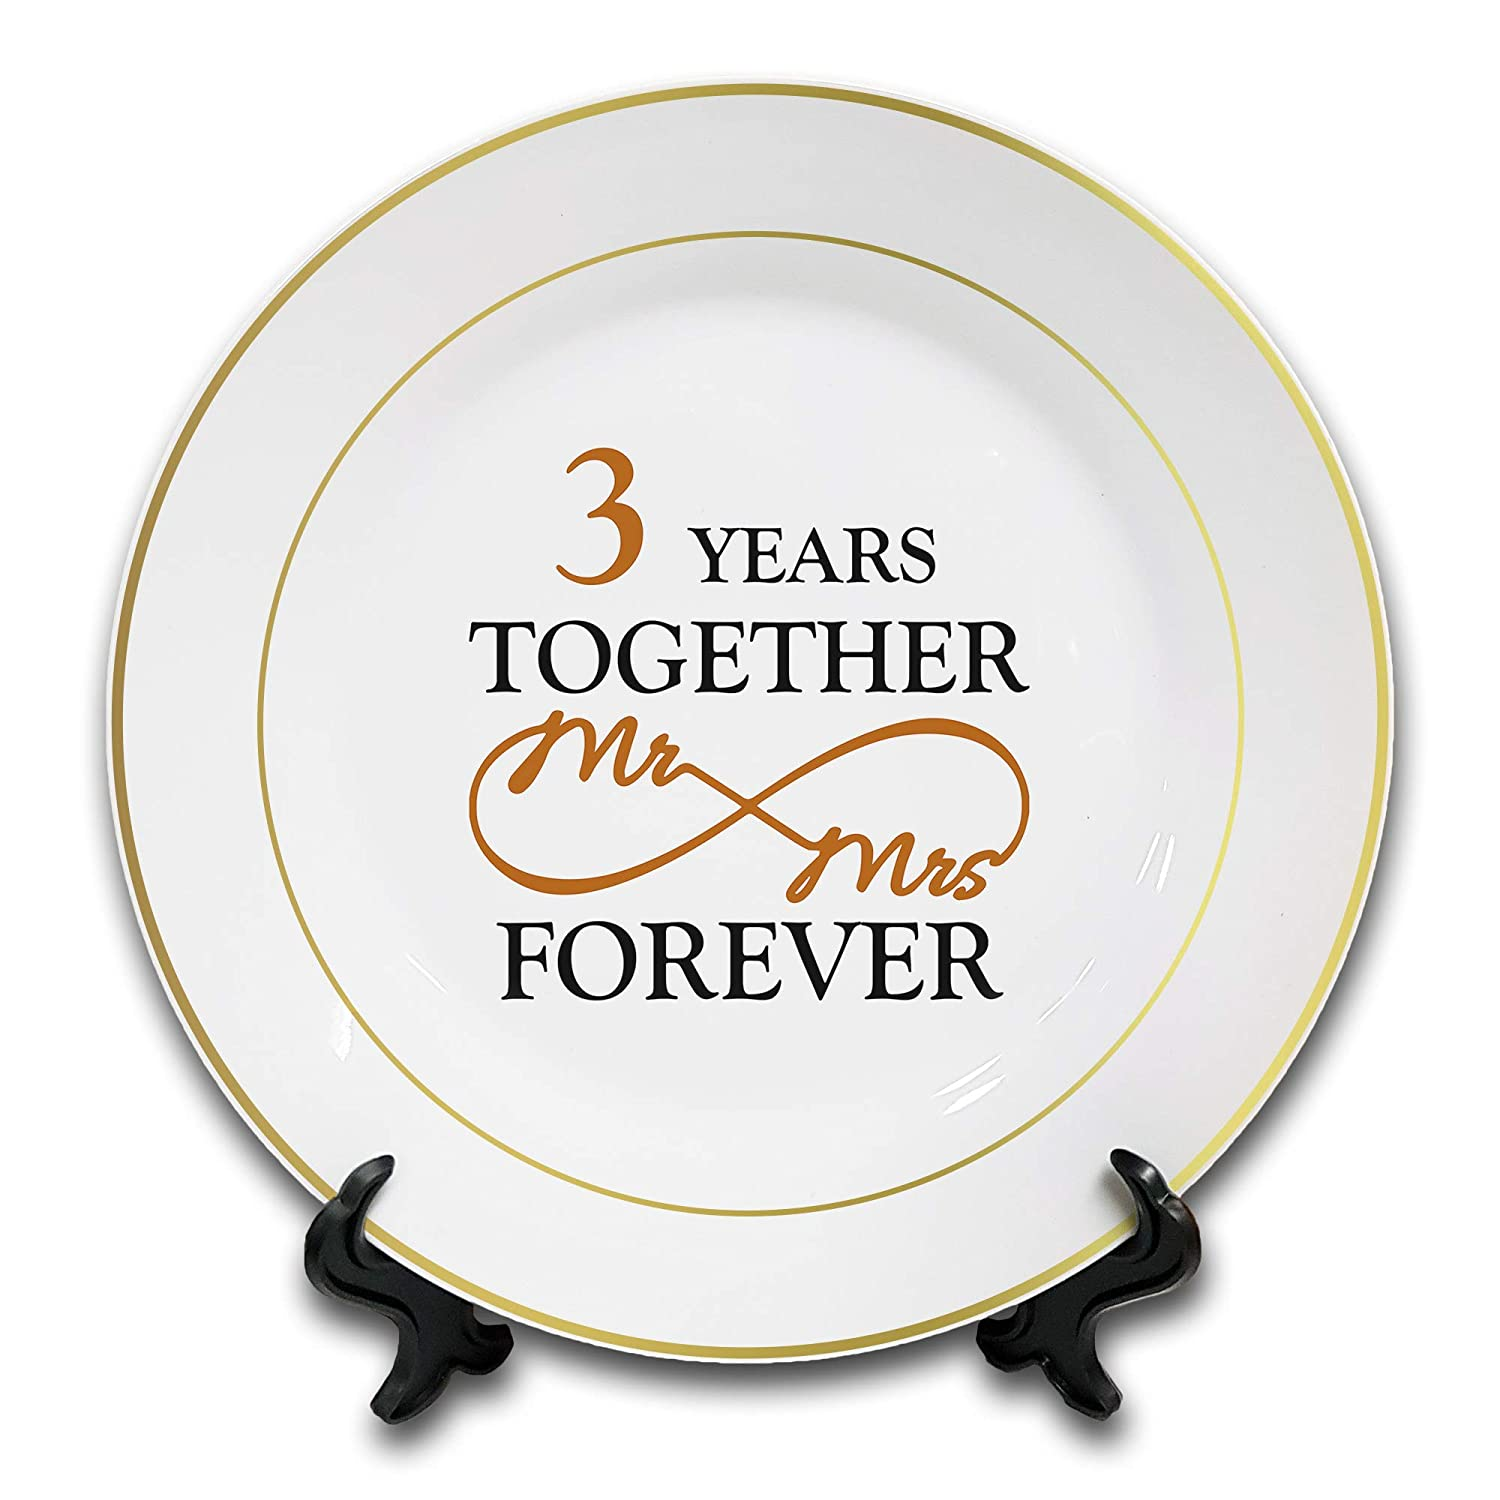 3rd Leather Novelty Ceramic Plate /& Stand Gold Rim 8 Mr /& Mrs Together Forever Anniversary